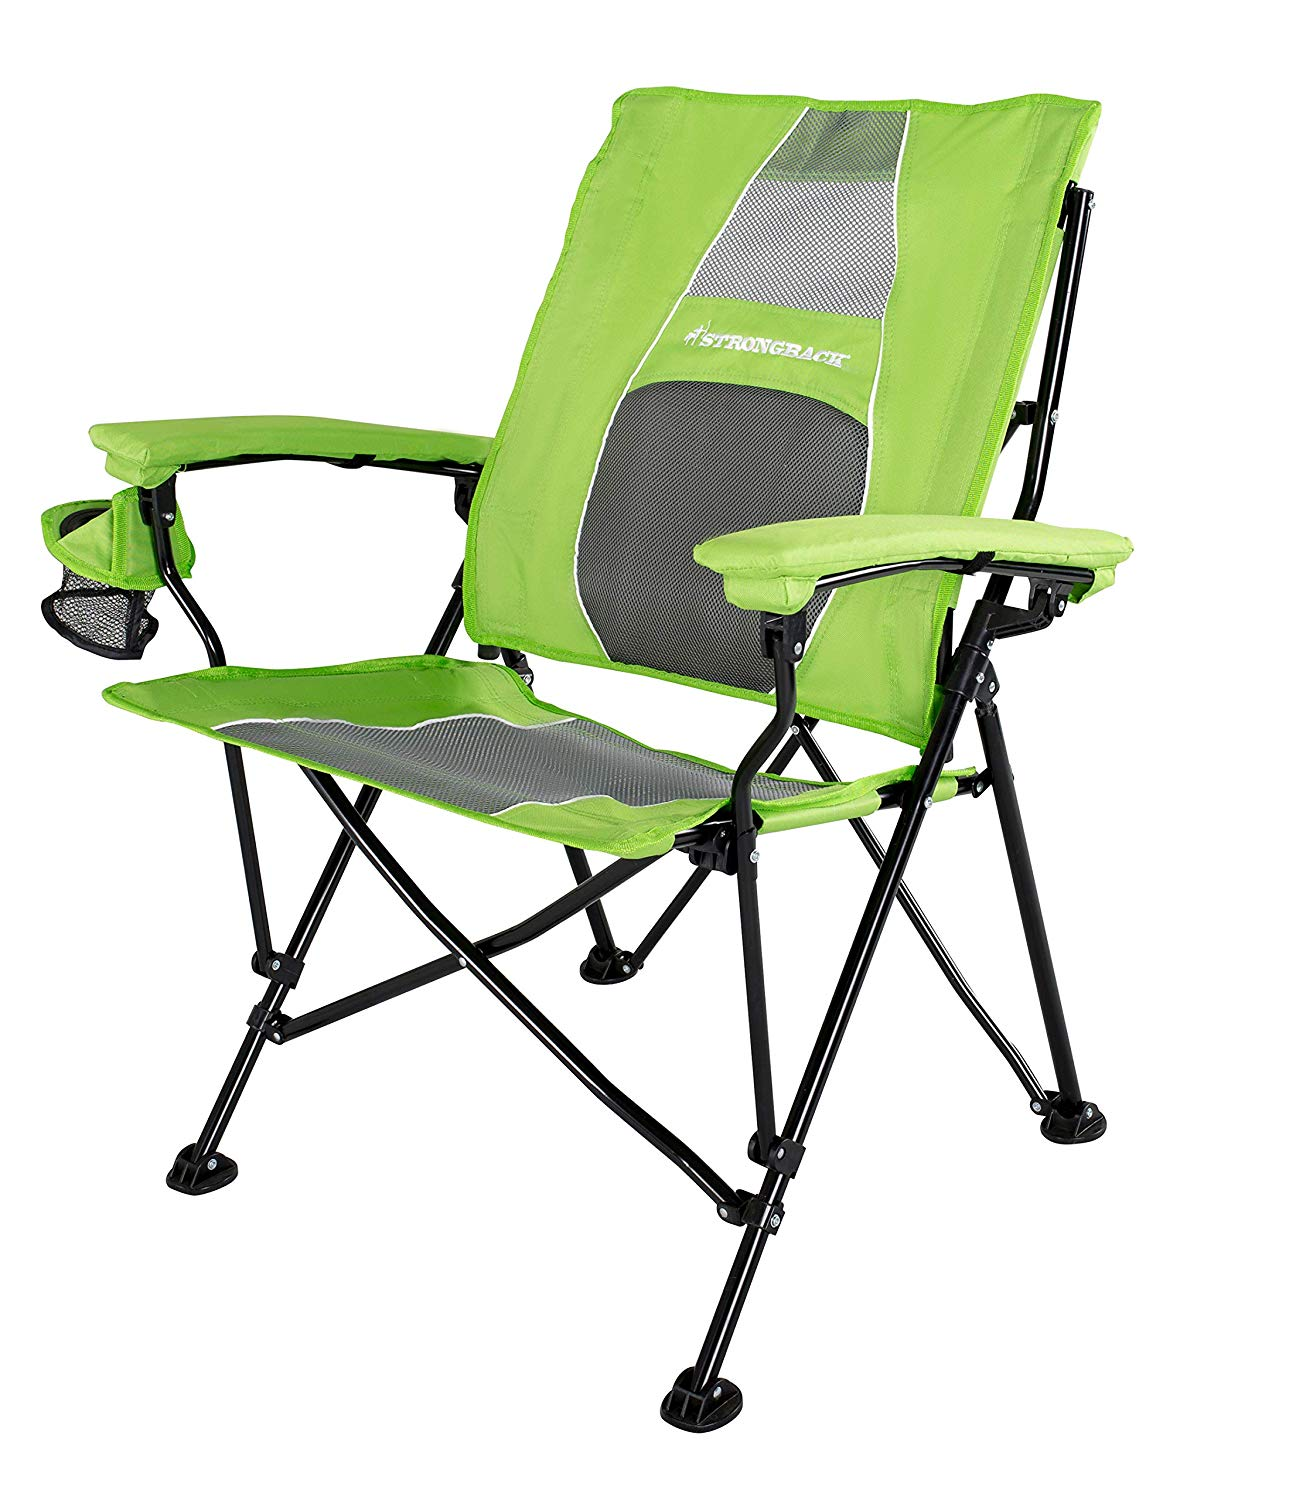 STRONGBACK Elite Folding Camping Lawn Lounge Chair Heavy Duty Camp Outdoor Seat